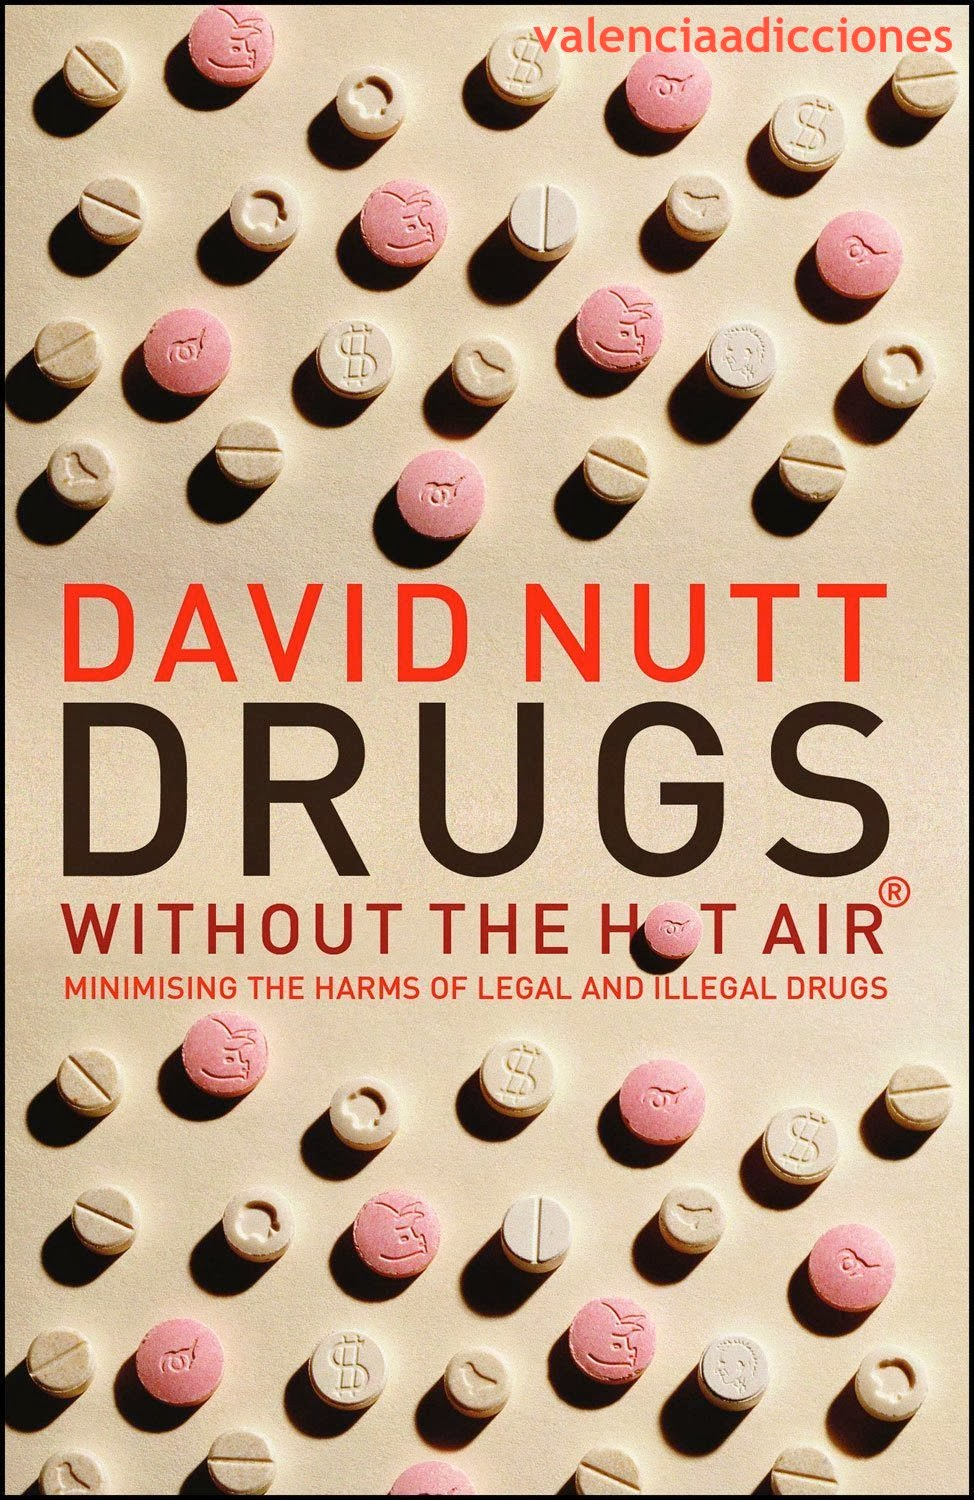 DRUGS WITHOUT THE HOT AIR DAVID NUTT